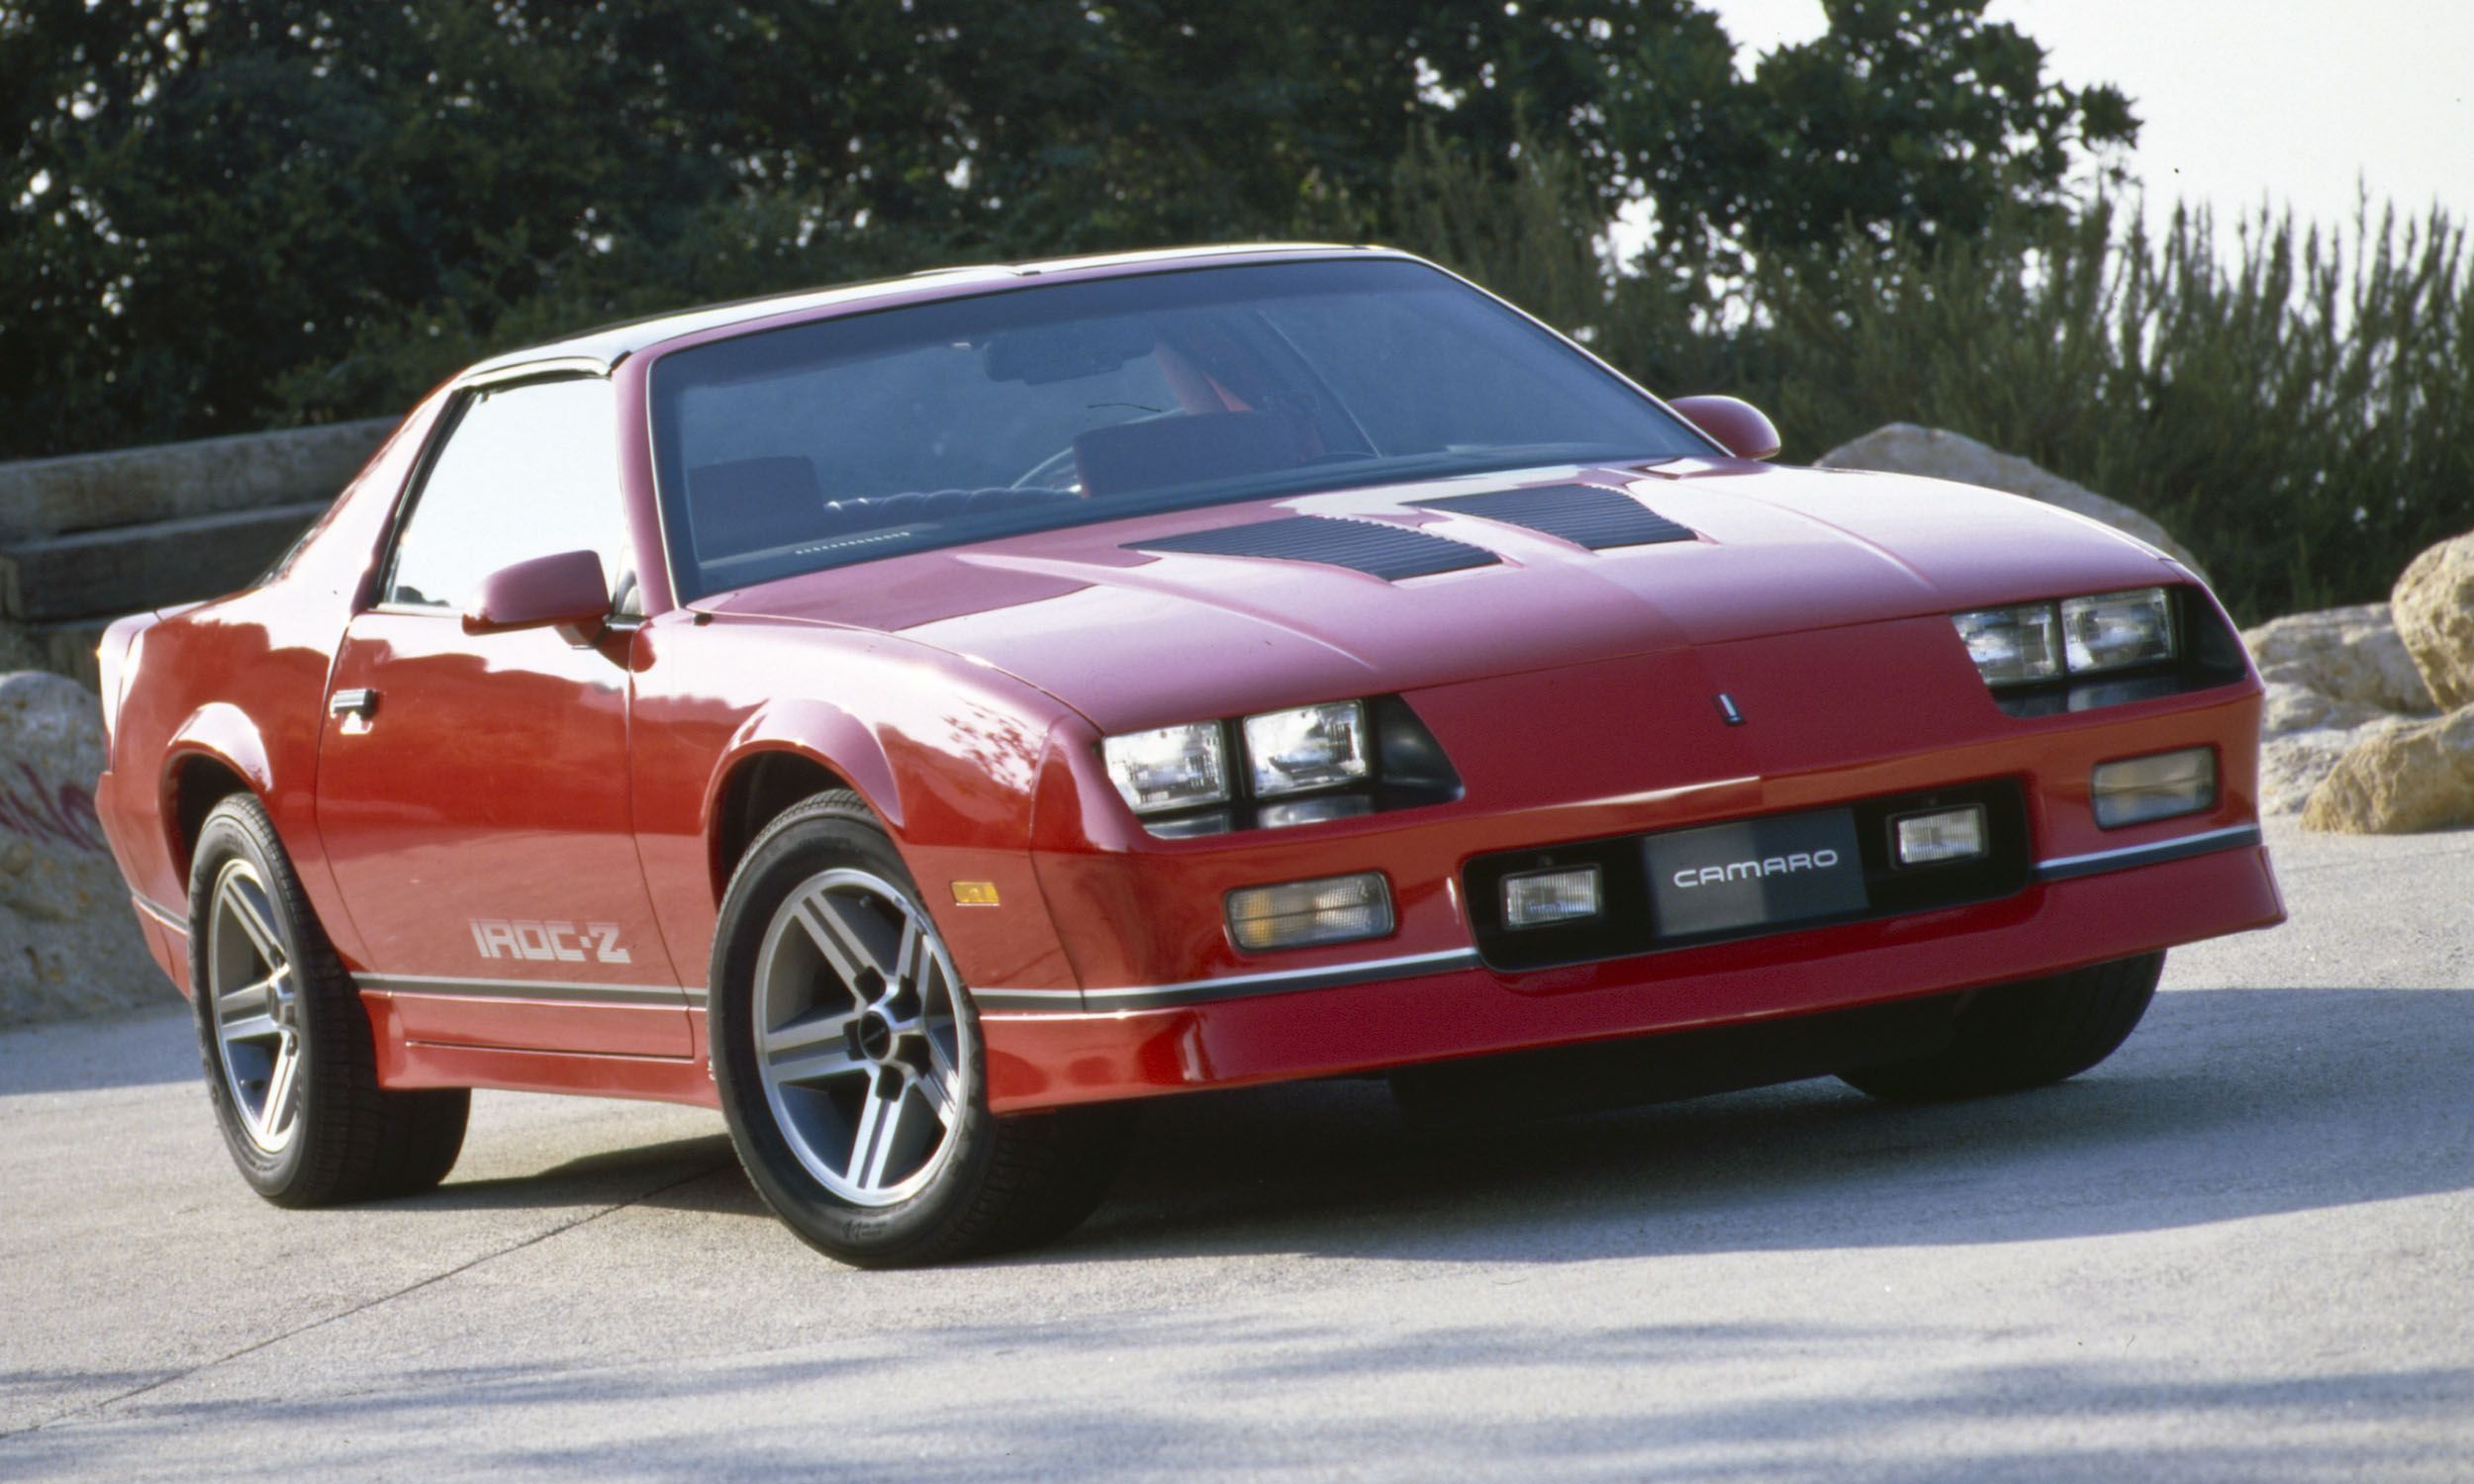 1987 iroc z camaro always liked this one